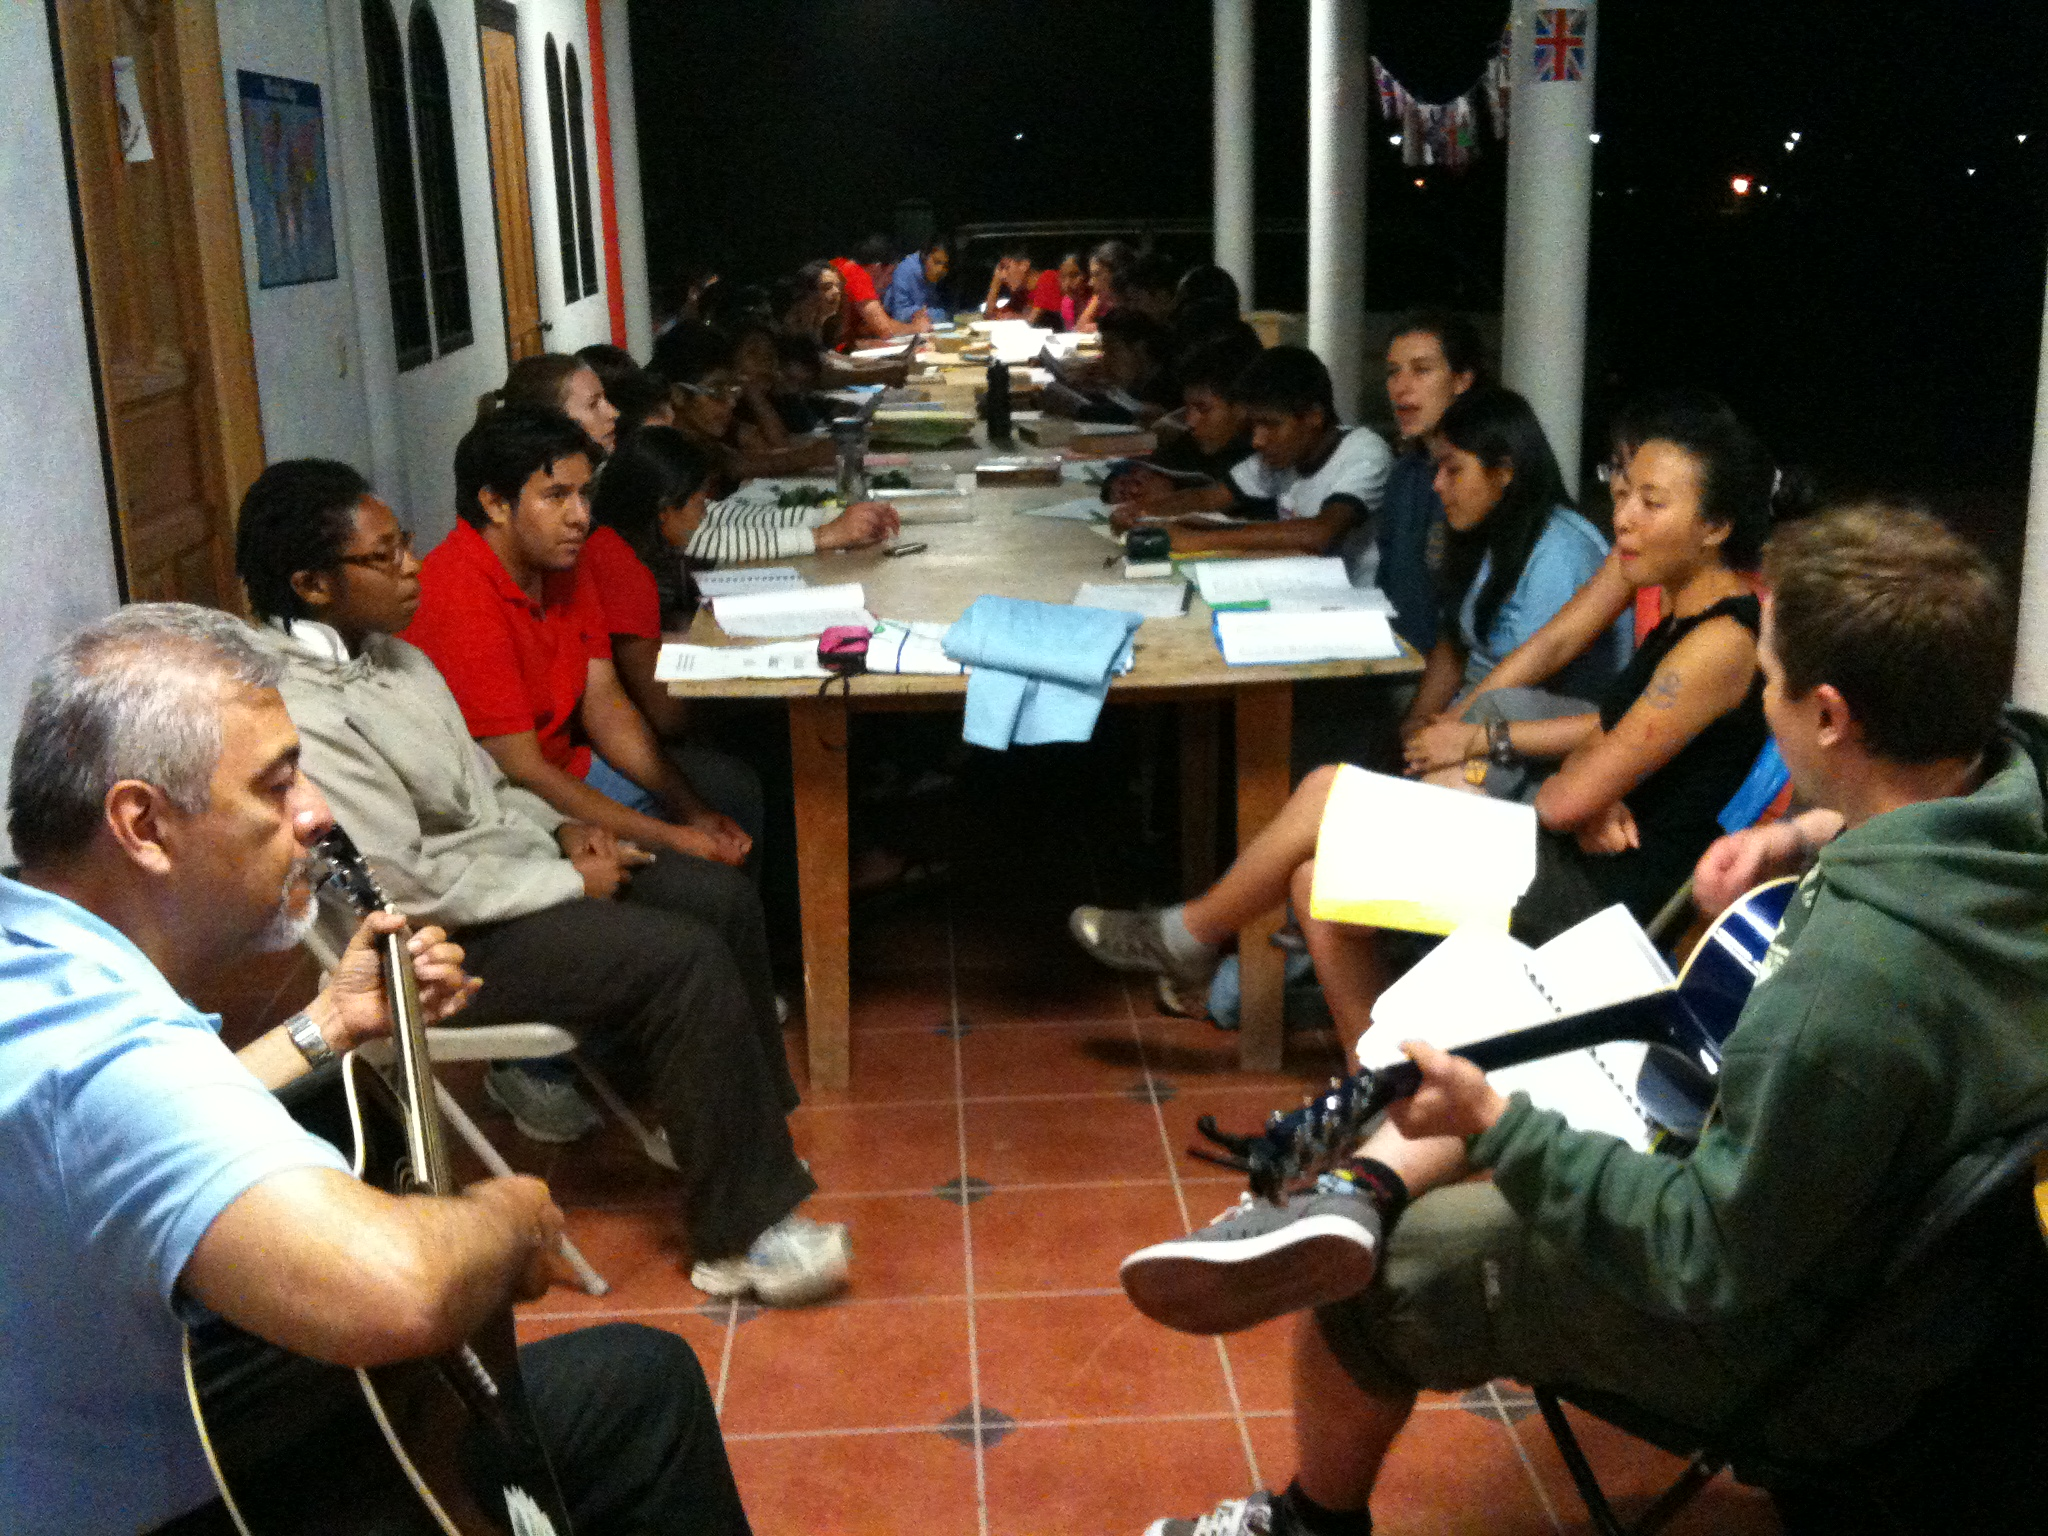 Saul and several volunteers participating in a bible study and discussion